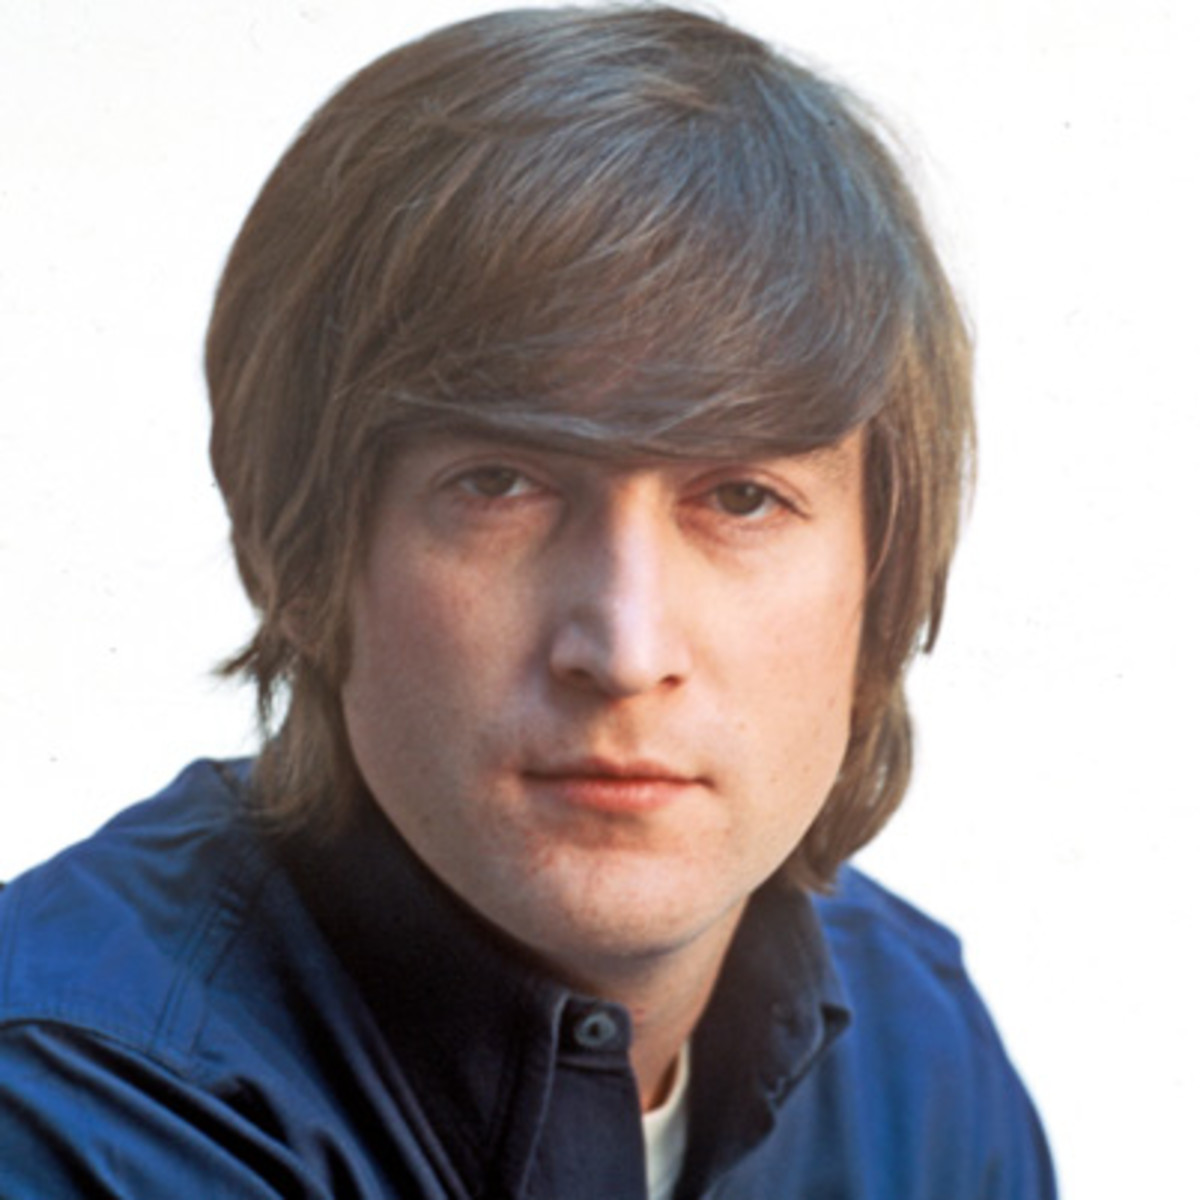 The Legendary John Lennon